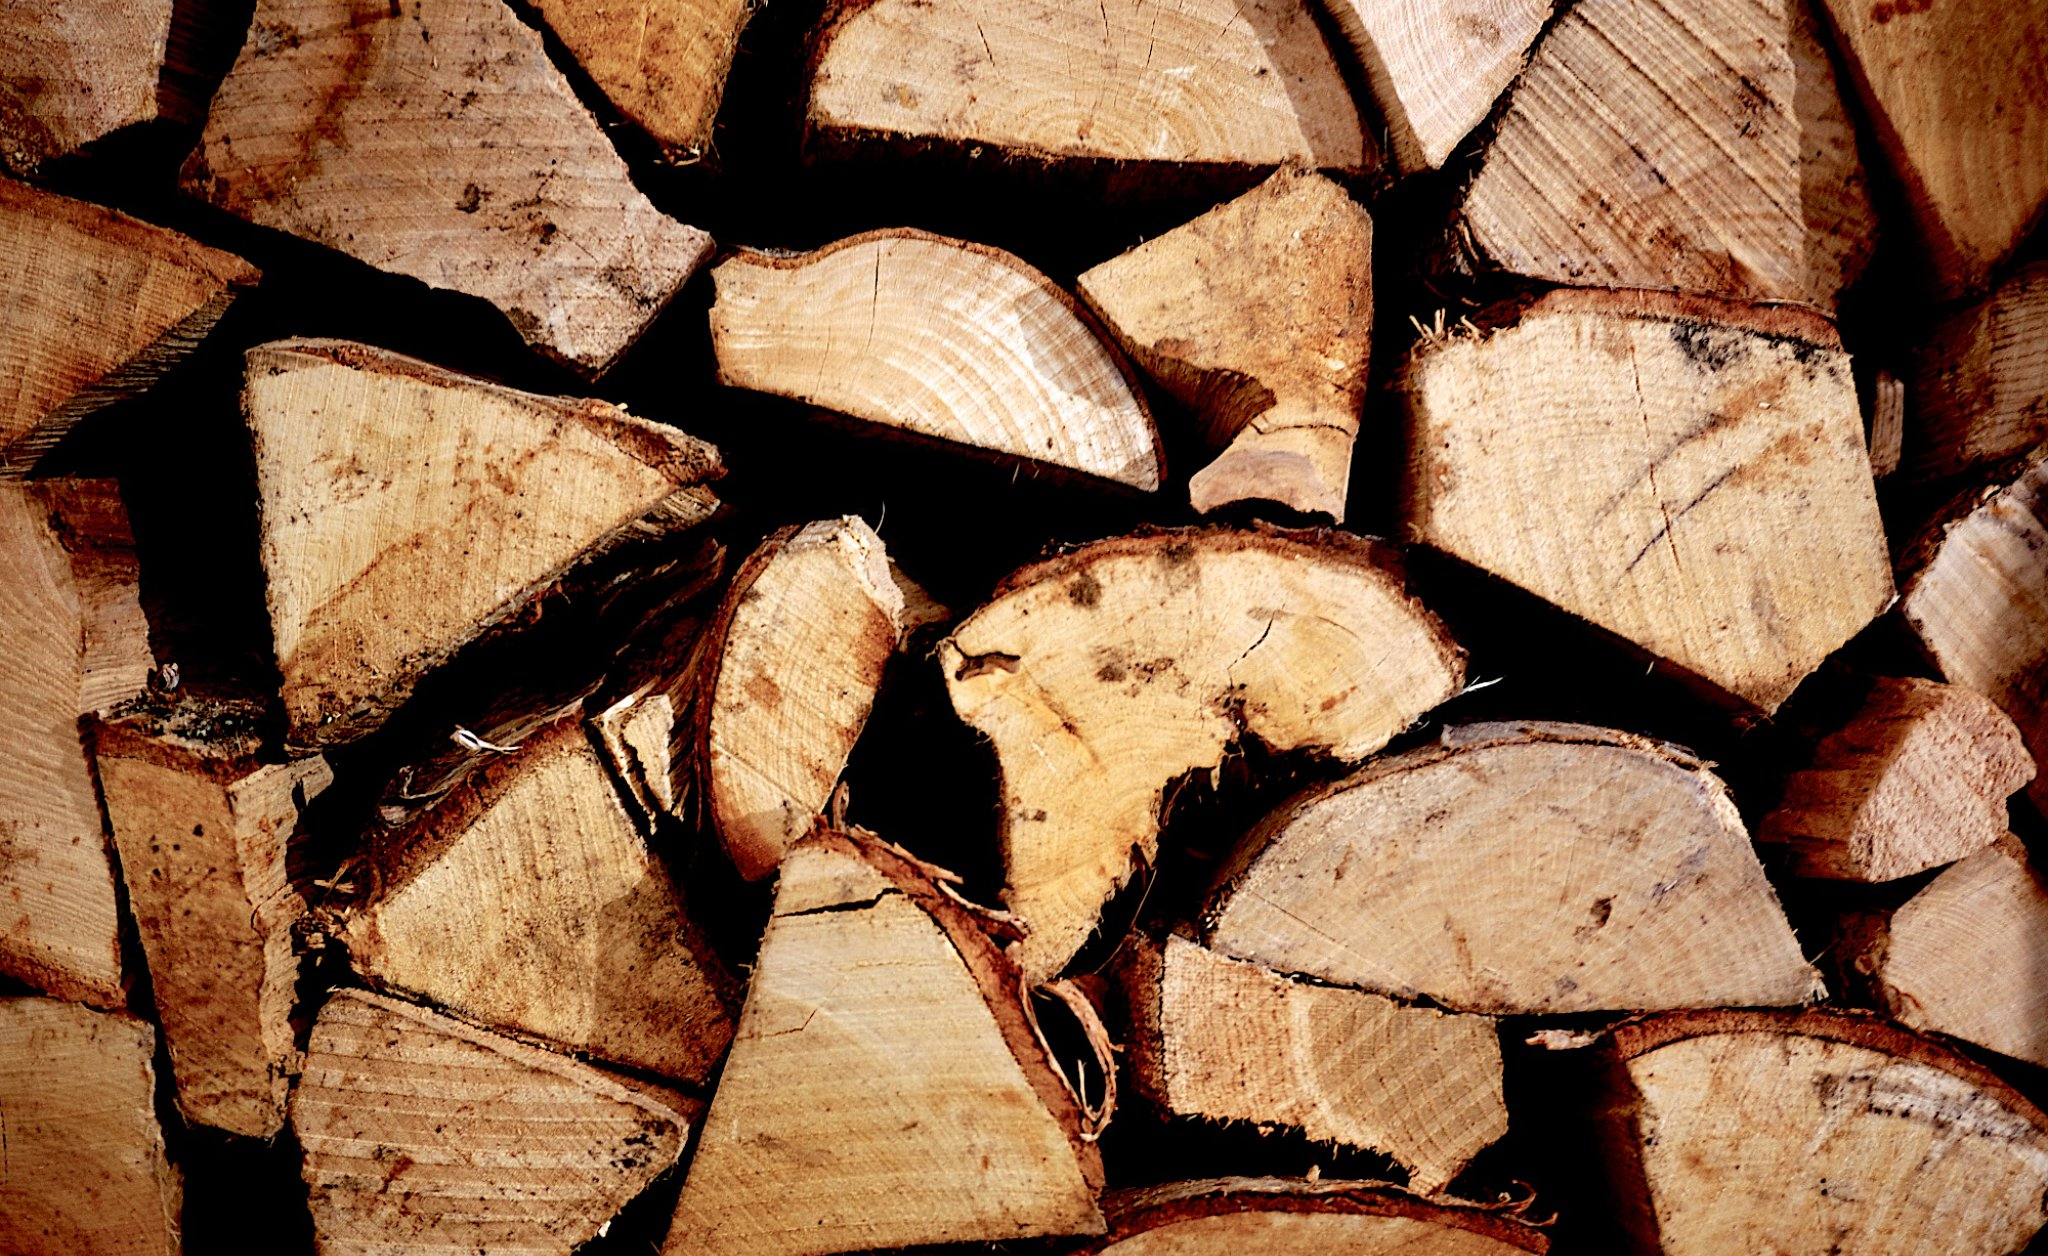 Image showing kiln dried logs stacked in a pile